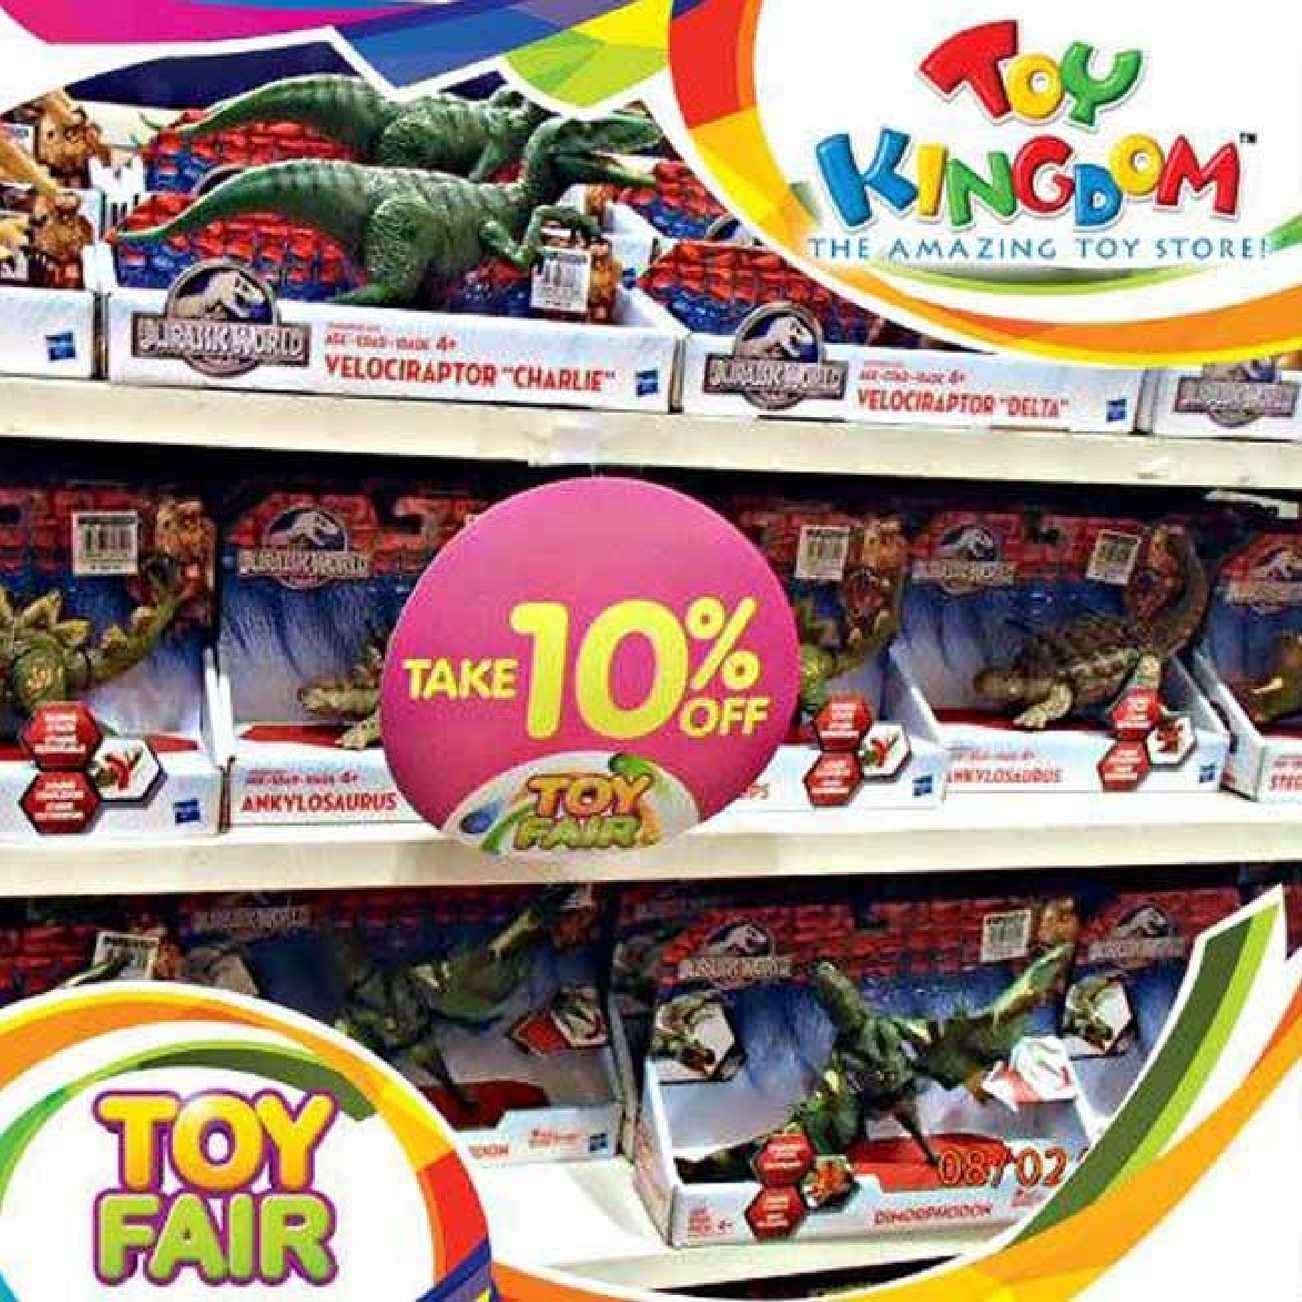 Calameo Enjoy 10 Off On Dinosaur Toys At Toy Kingdom Offer Valid From August 1 31 2015 70801